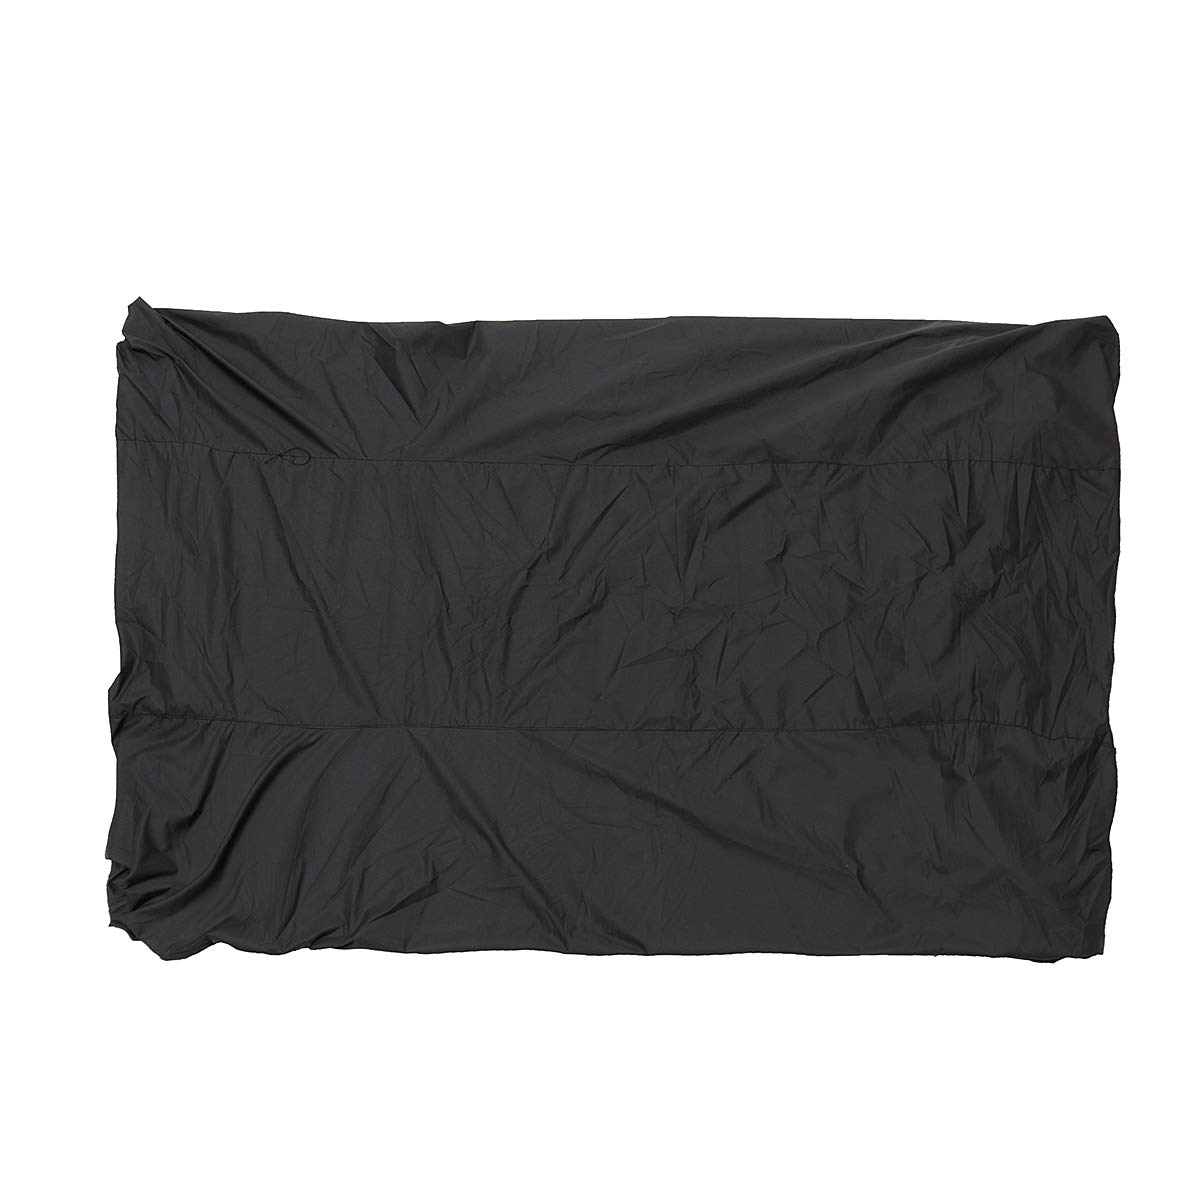 dDanke Black Rowing Machine Cover Sports Equipment Dust Covers for Outside Weather Rain & Sunshine Resistance 285x51x89cm by dDanke (Image #6)